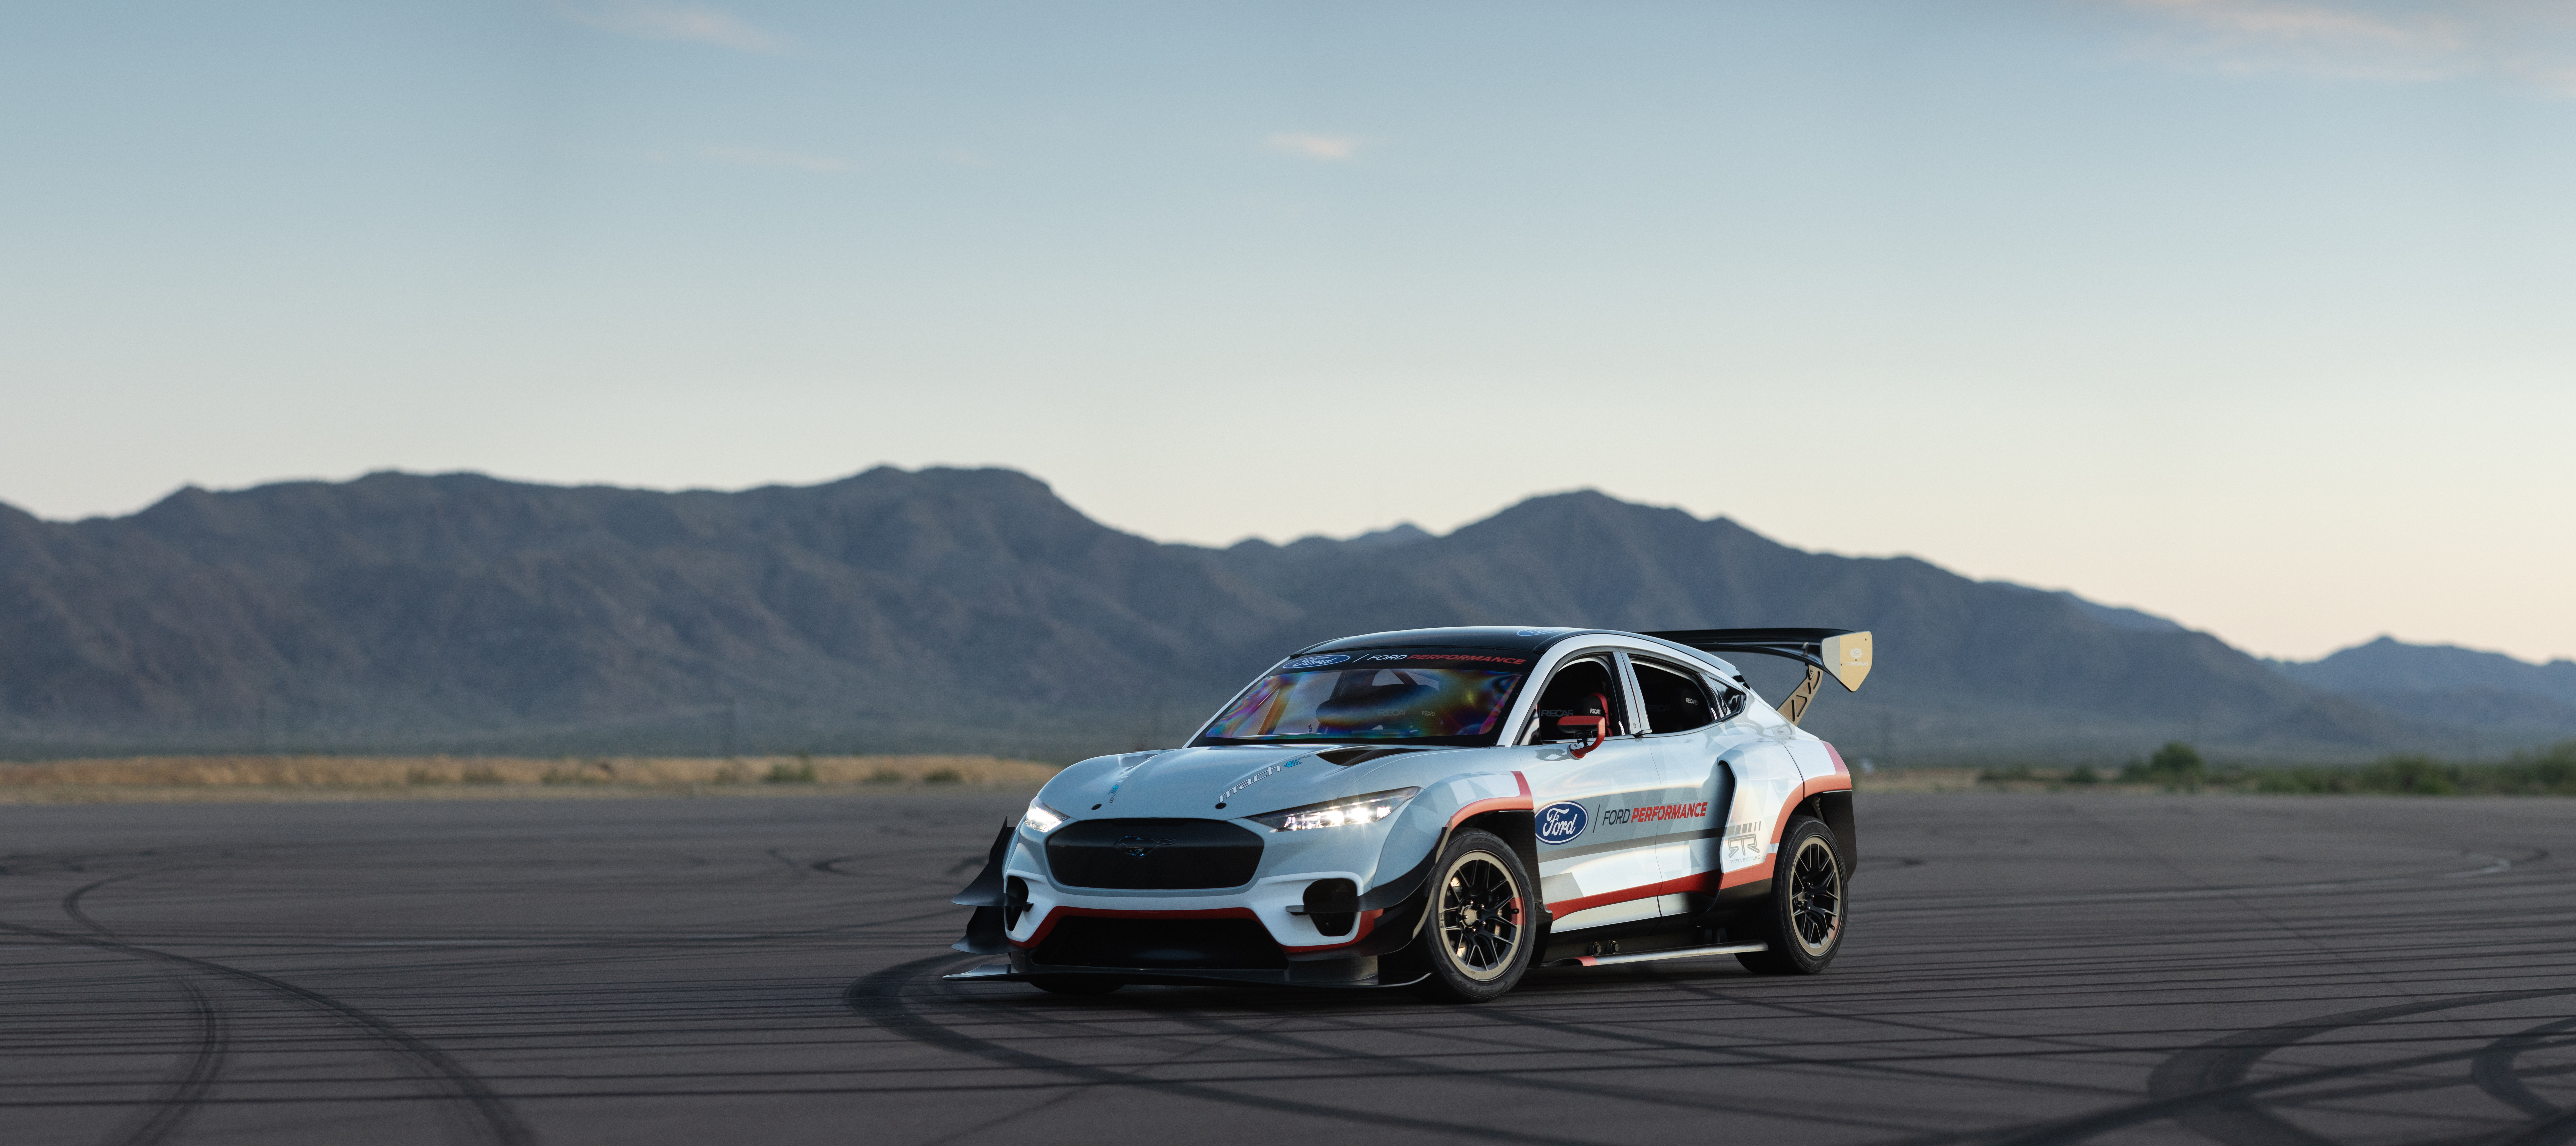 Ford Mustang Mach-E 1400 prototype – seven electric motors, 1,400 hp; 1,044 kg of downforce at 256 km/h Image #1150366